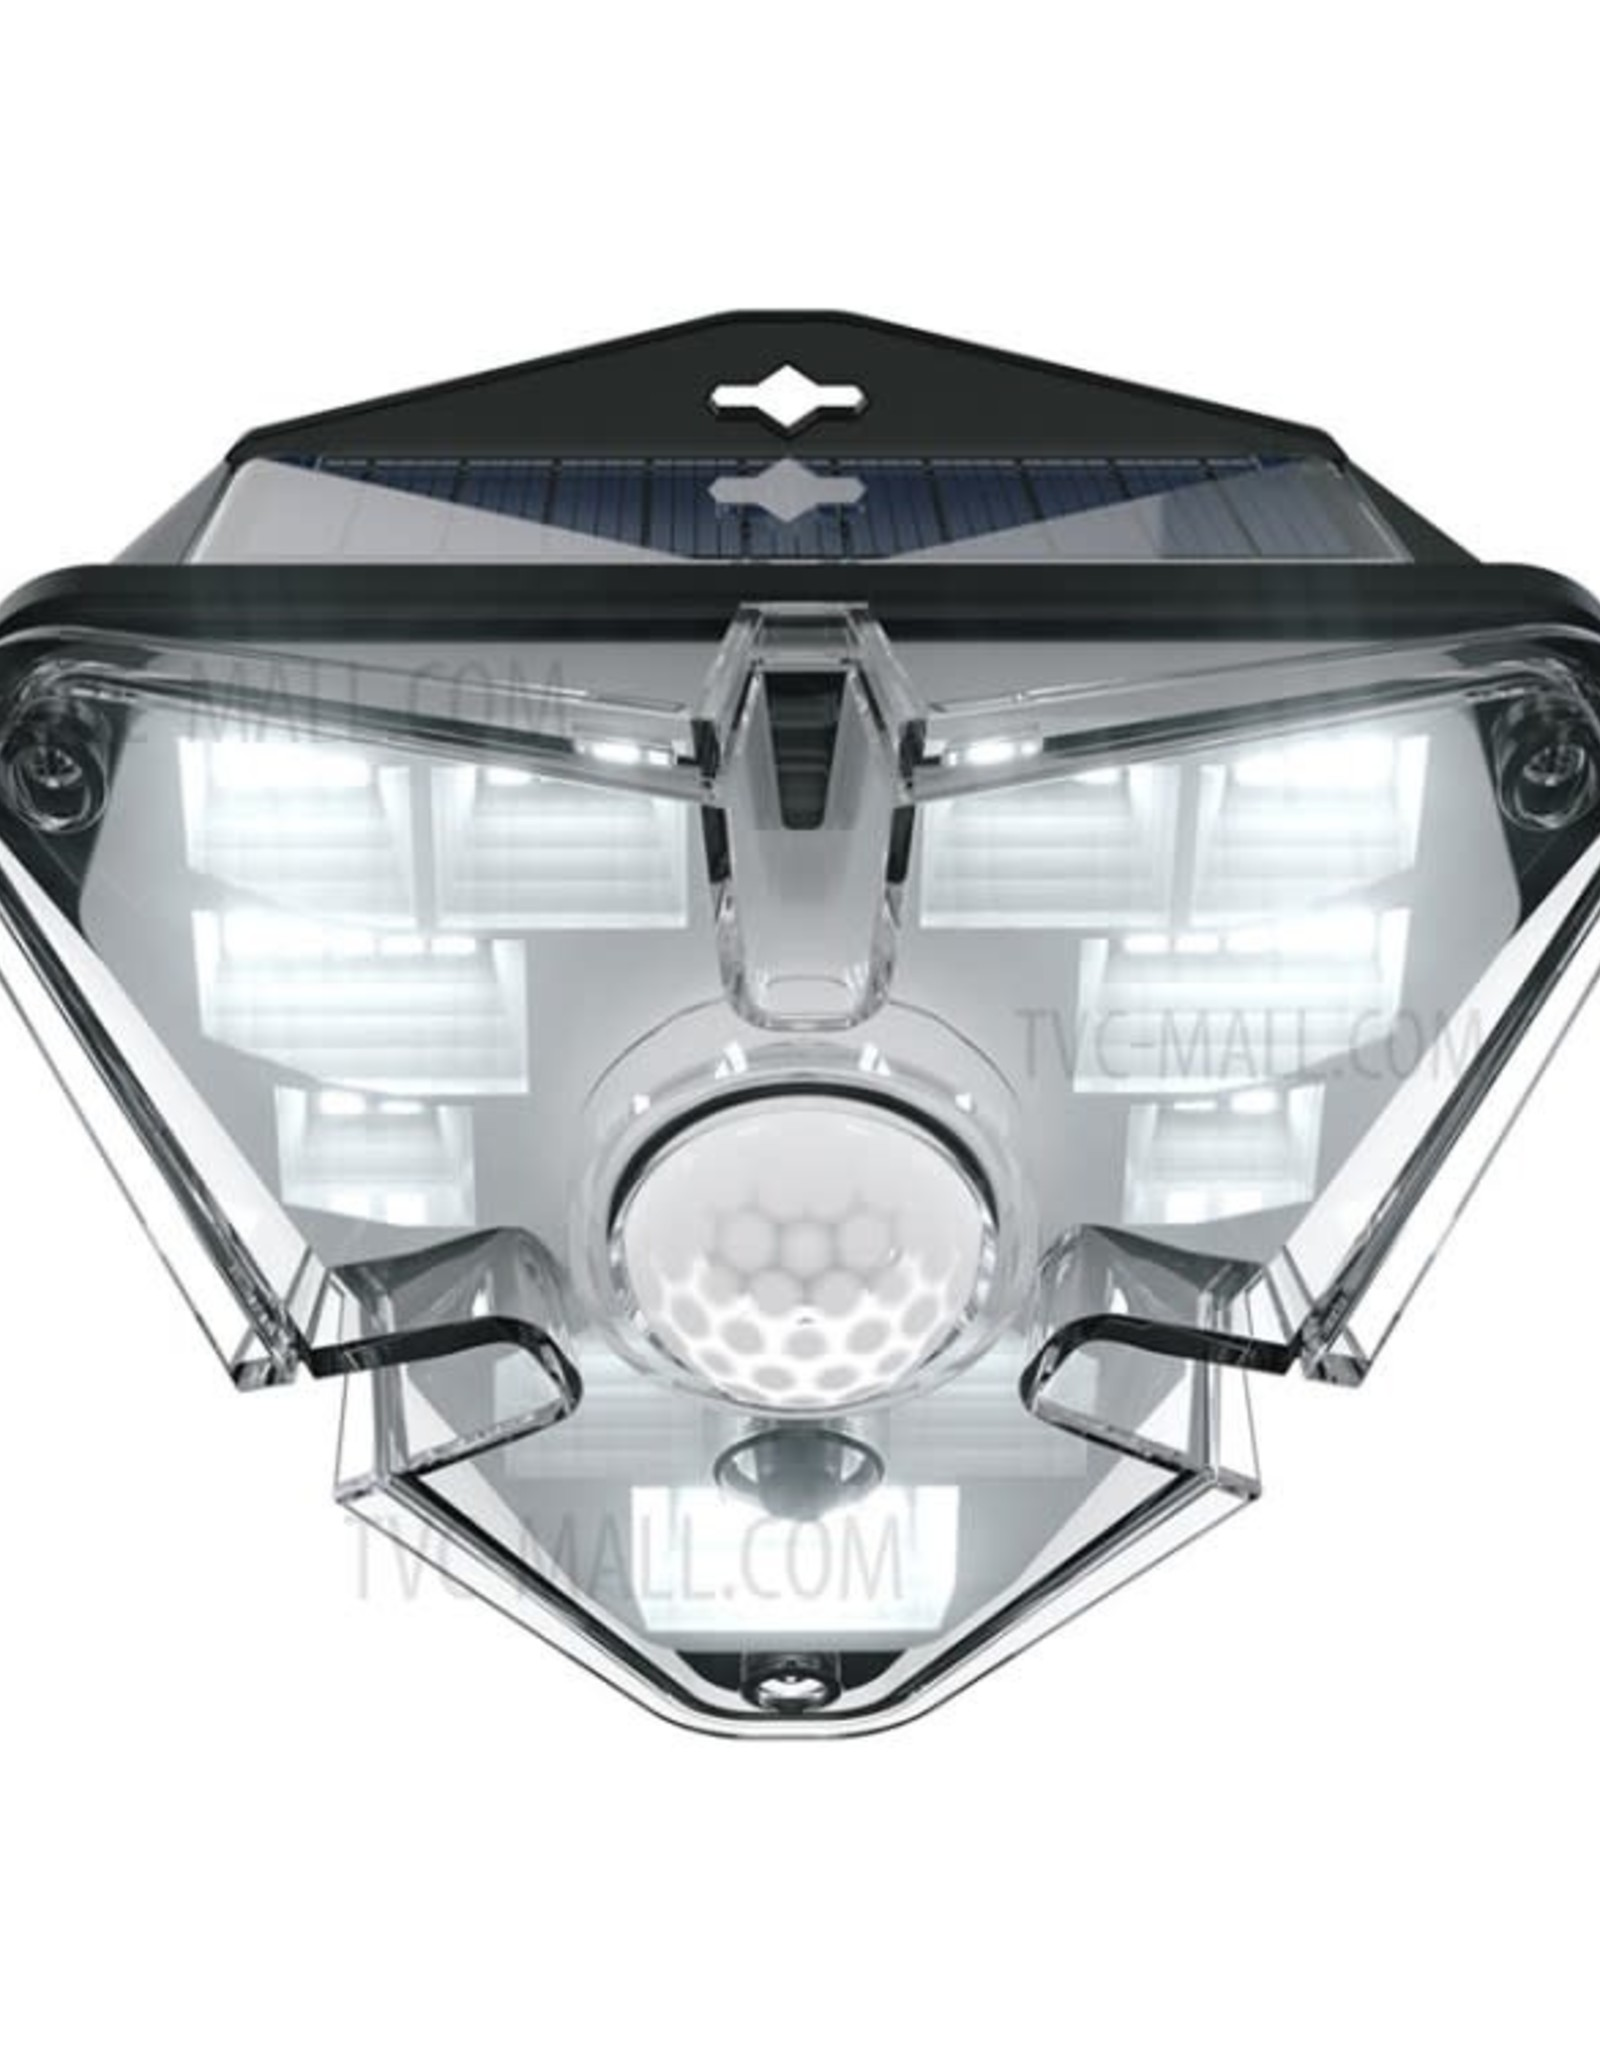 Baseus Energy Collection Series Solar Energy Human Body Induction Wall Lamp (Triangle Shape)